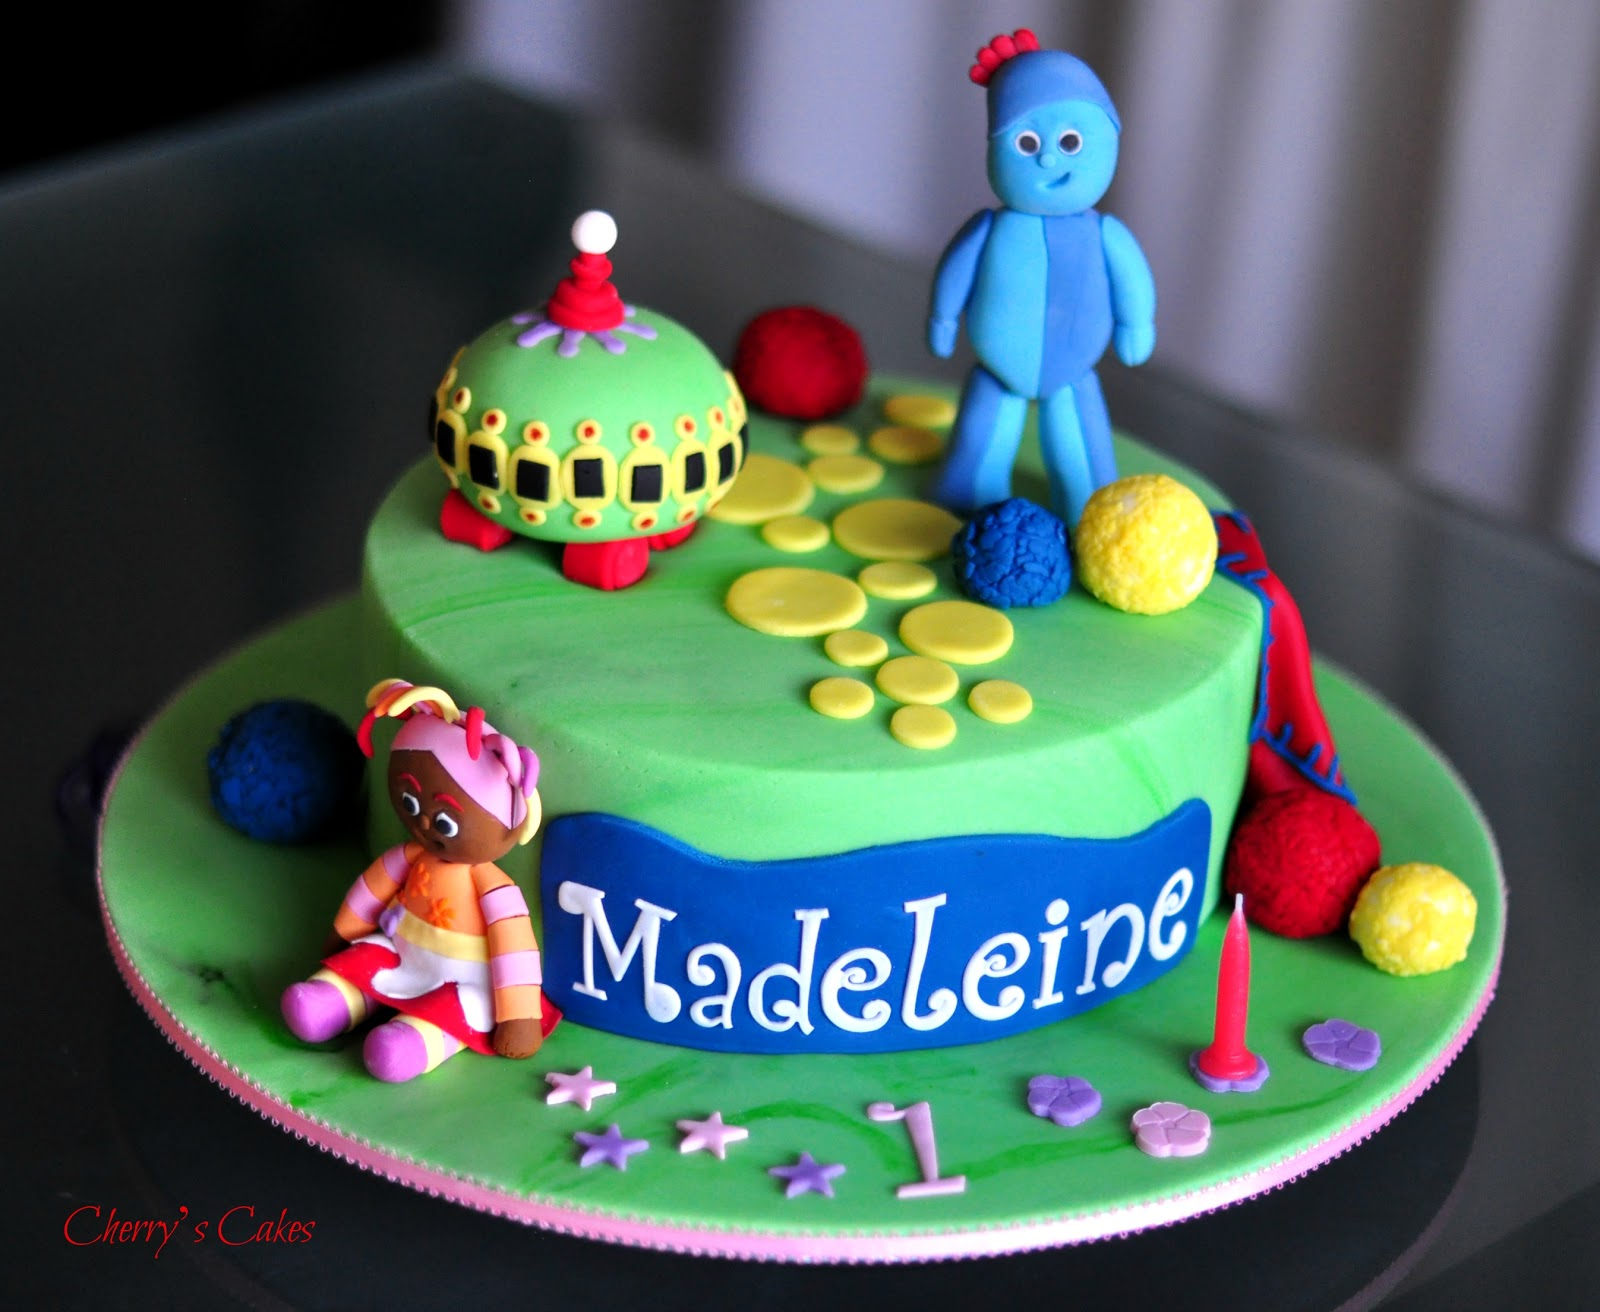 Cherry\'s Cakes: A Reprise for Madeleine - In the Night Garden